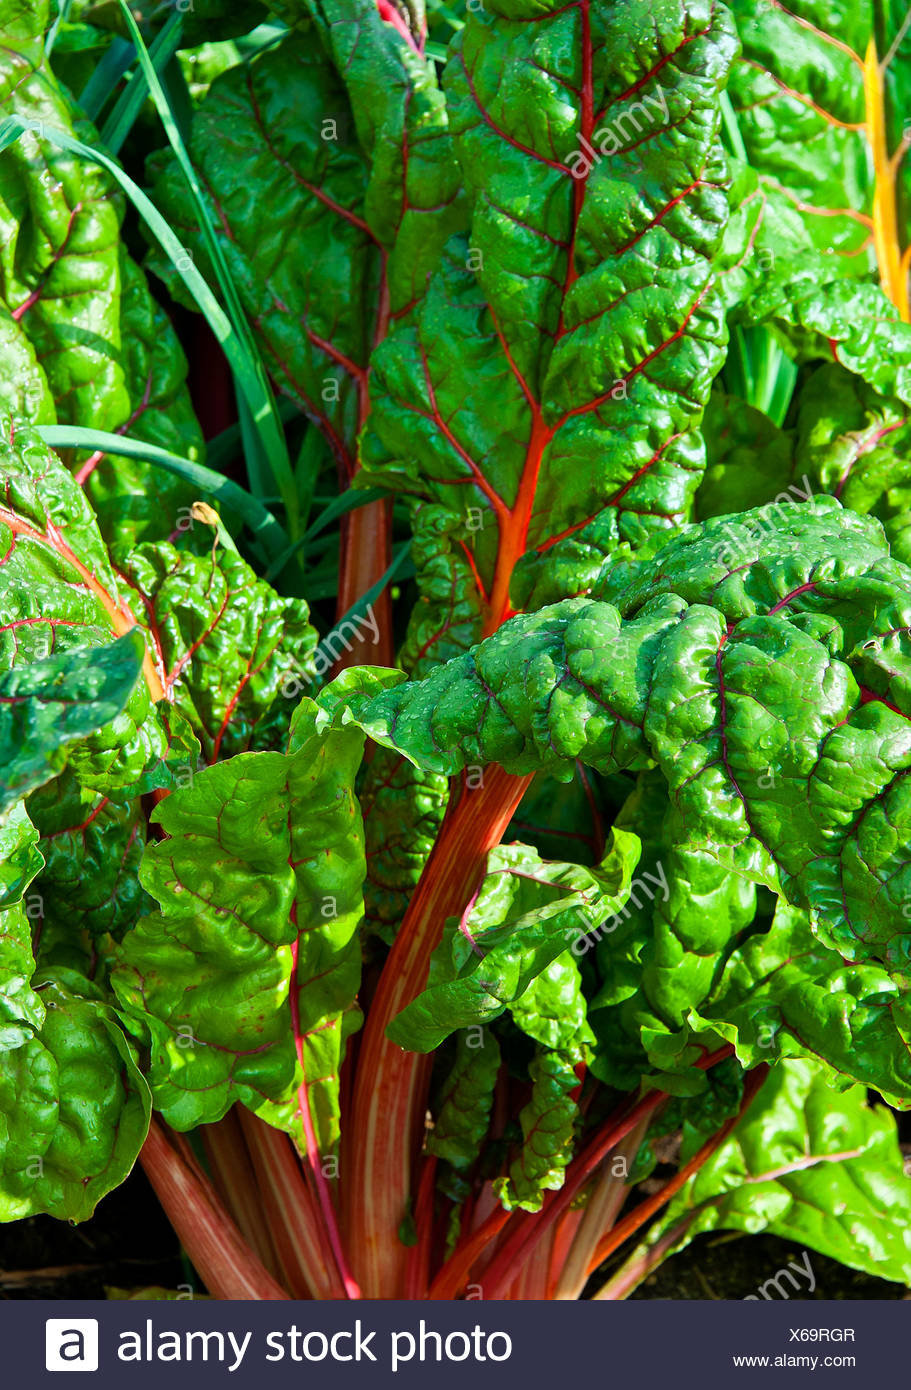 Rhubarb growing in a vegetable garden. - Stock Image